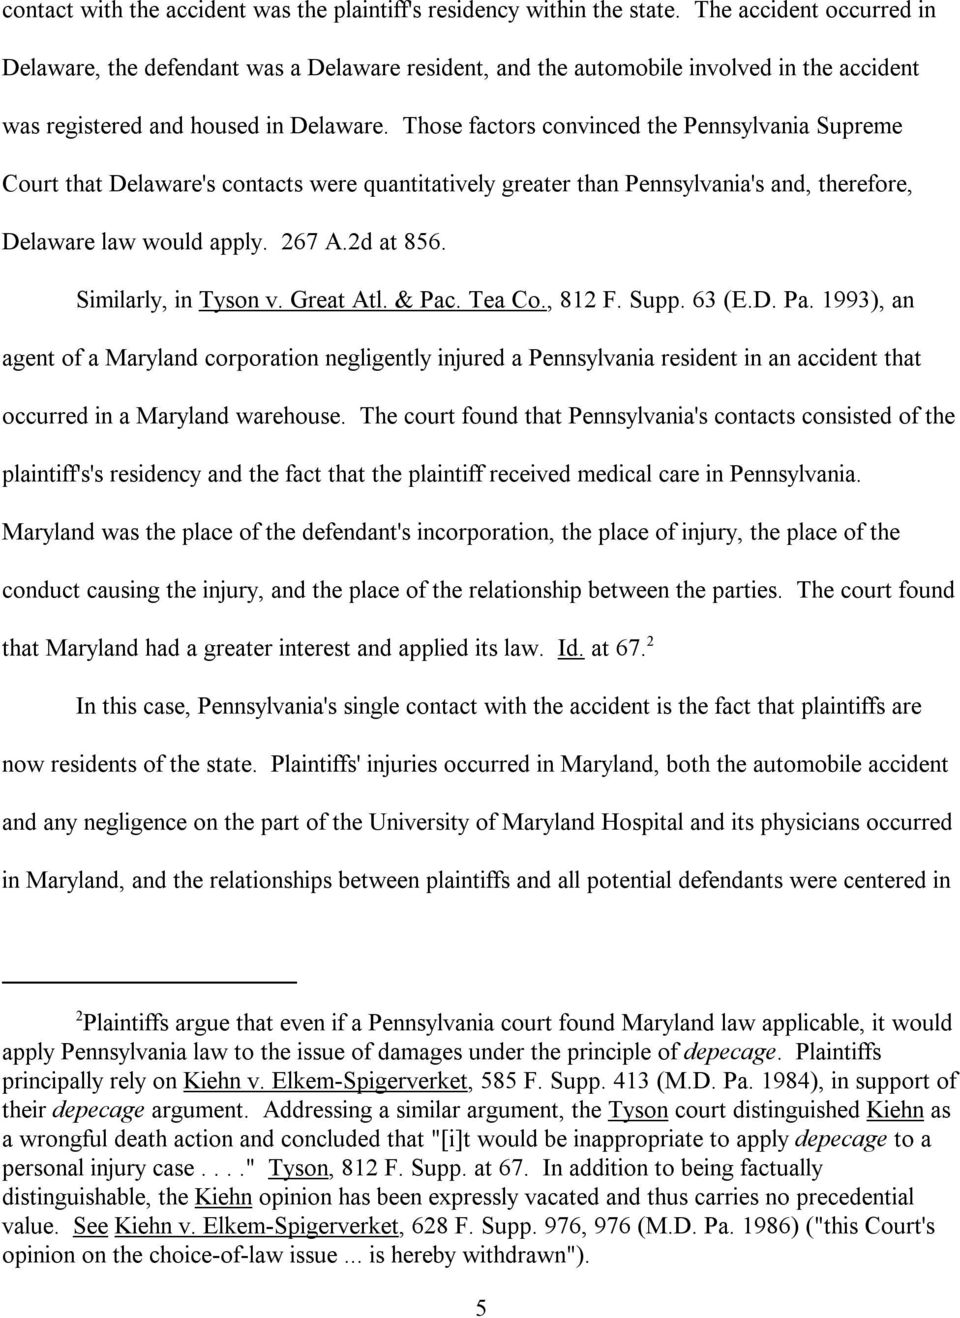 Those factors convinced the Pennsylvania Supreme Court that Delaware's contacts were quantitatively greater than Pennsylvania's and, therefore, Delaware law would apply. 267 A.2d at 856.